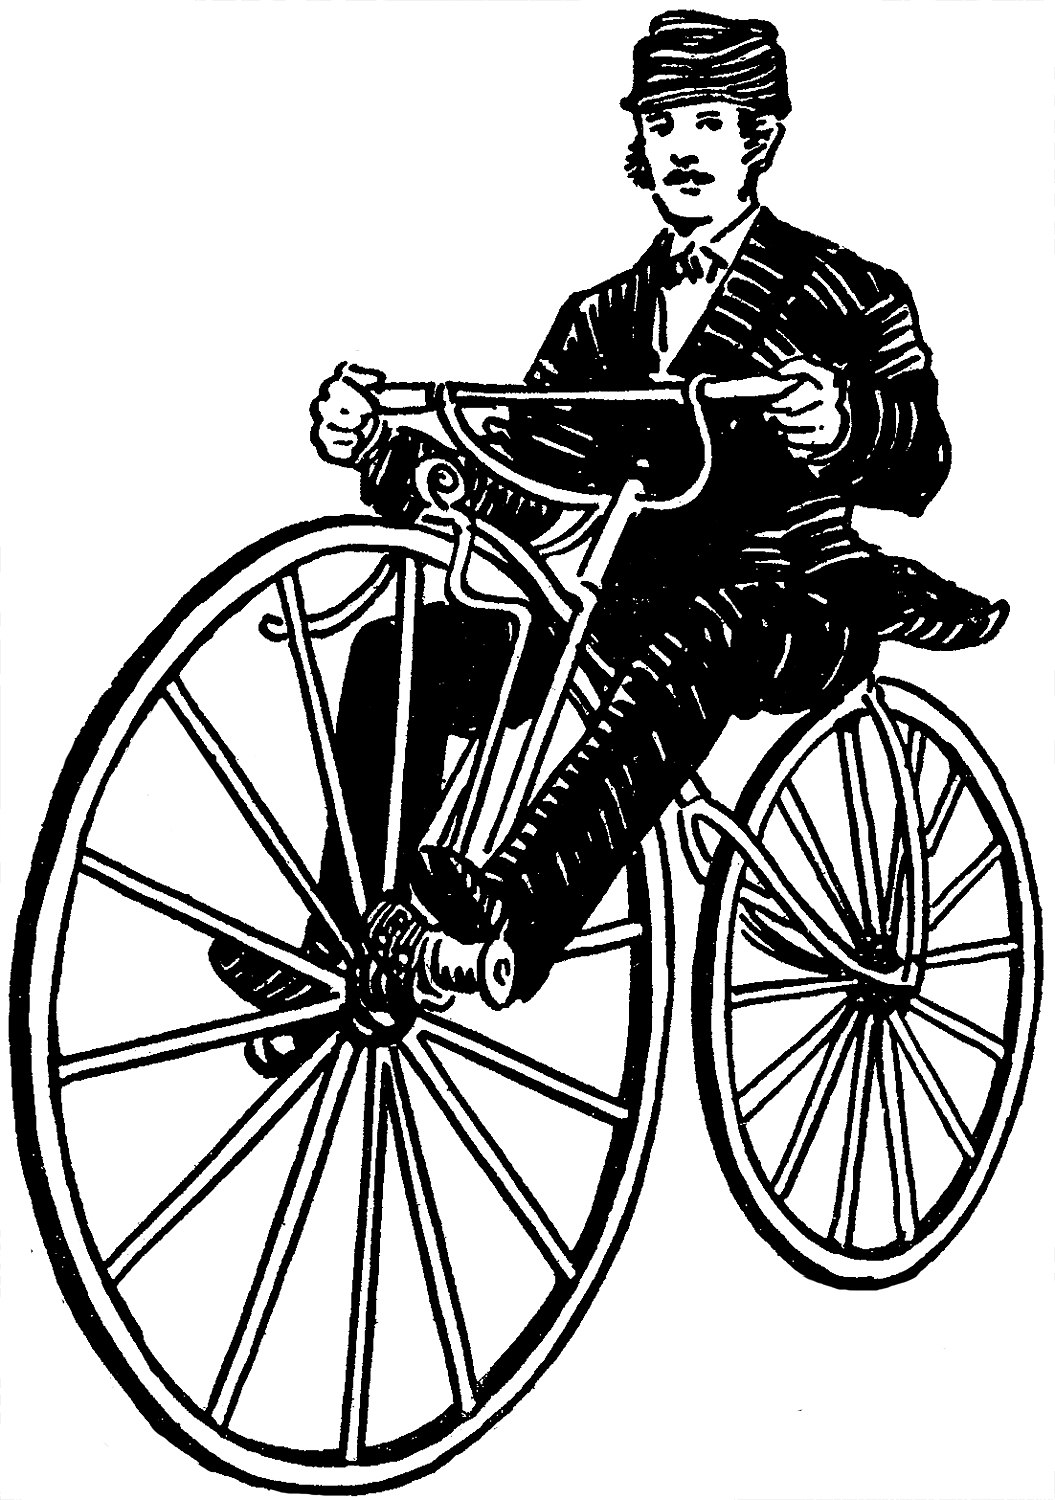 Man on Velocipede Bicycle